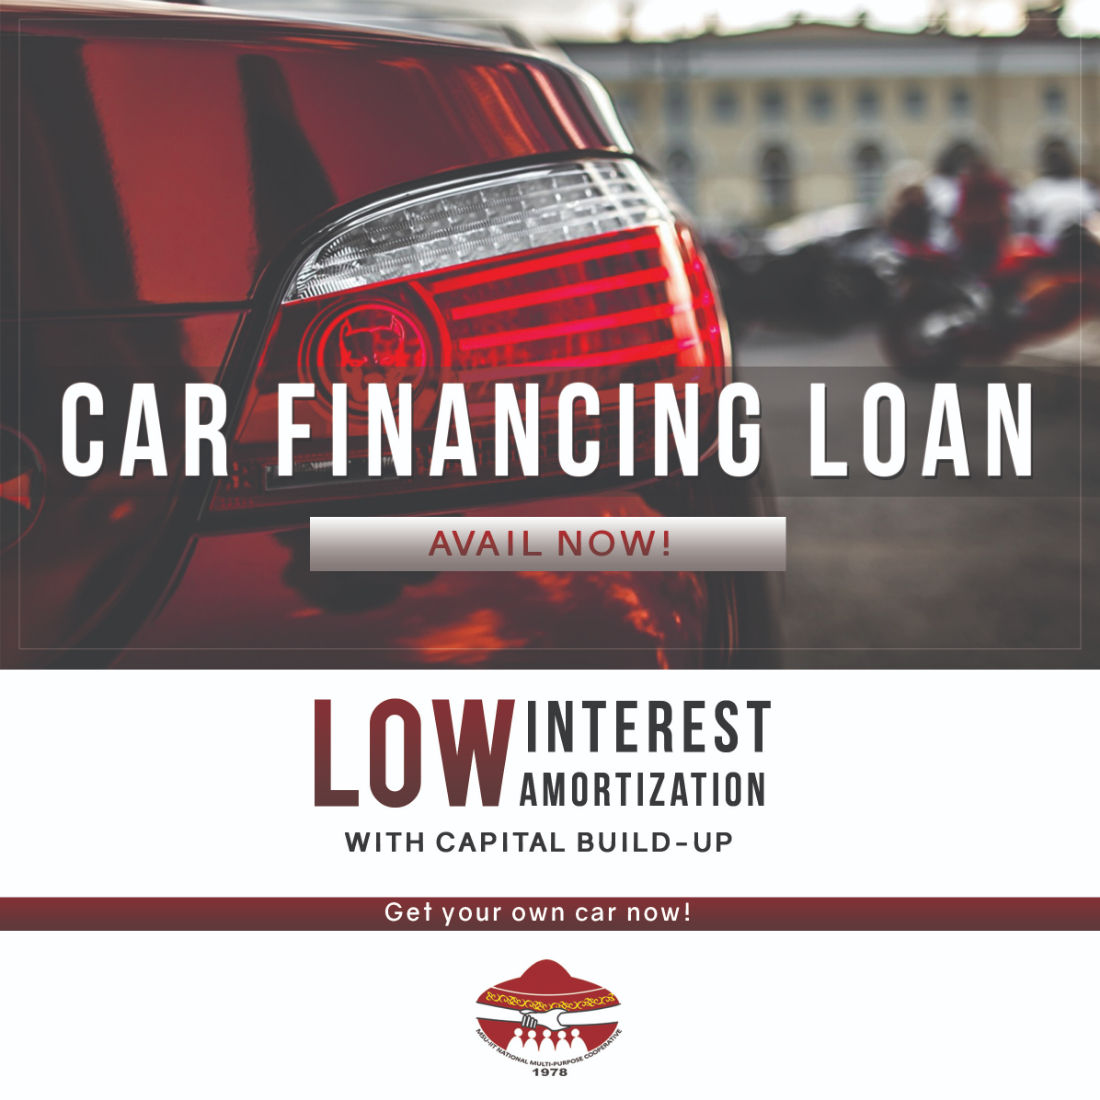 Car financing loan